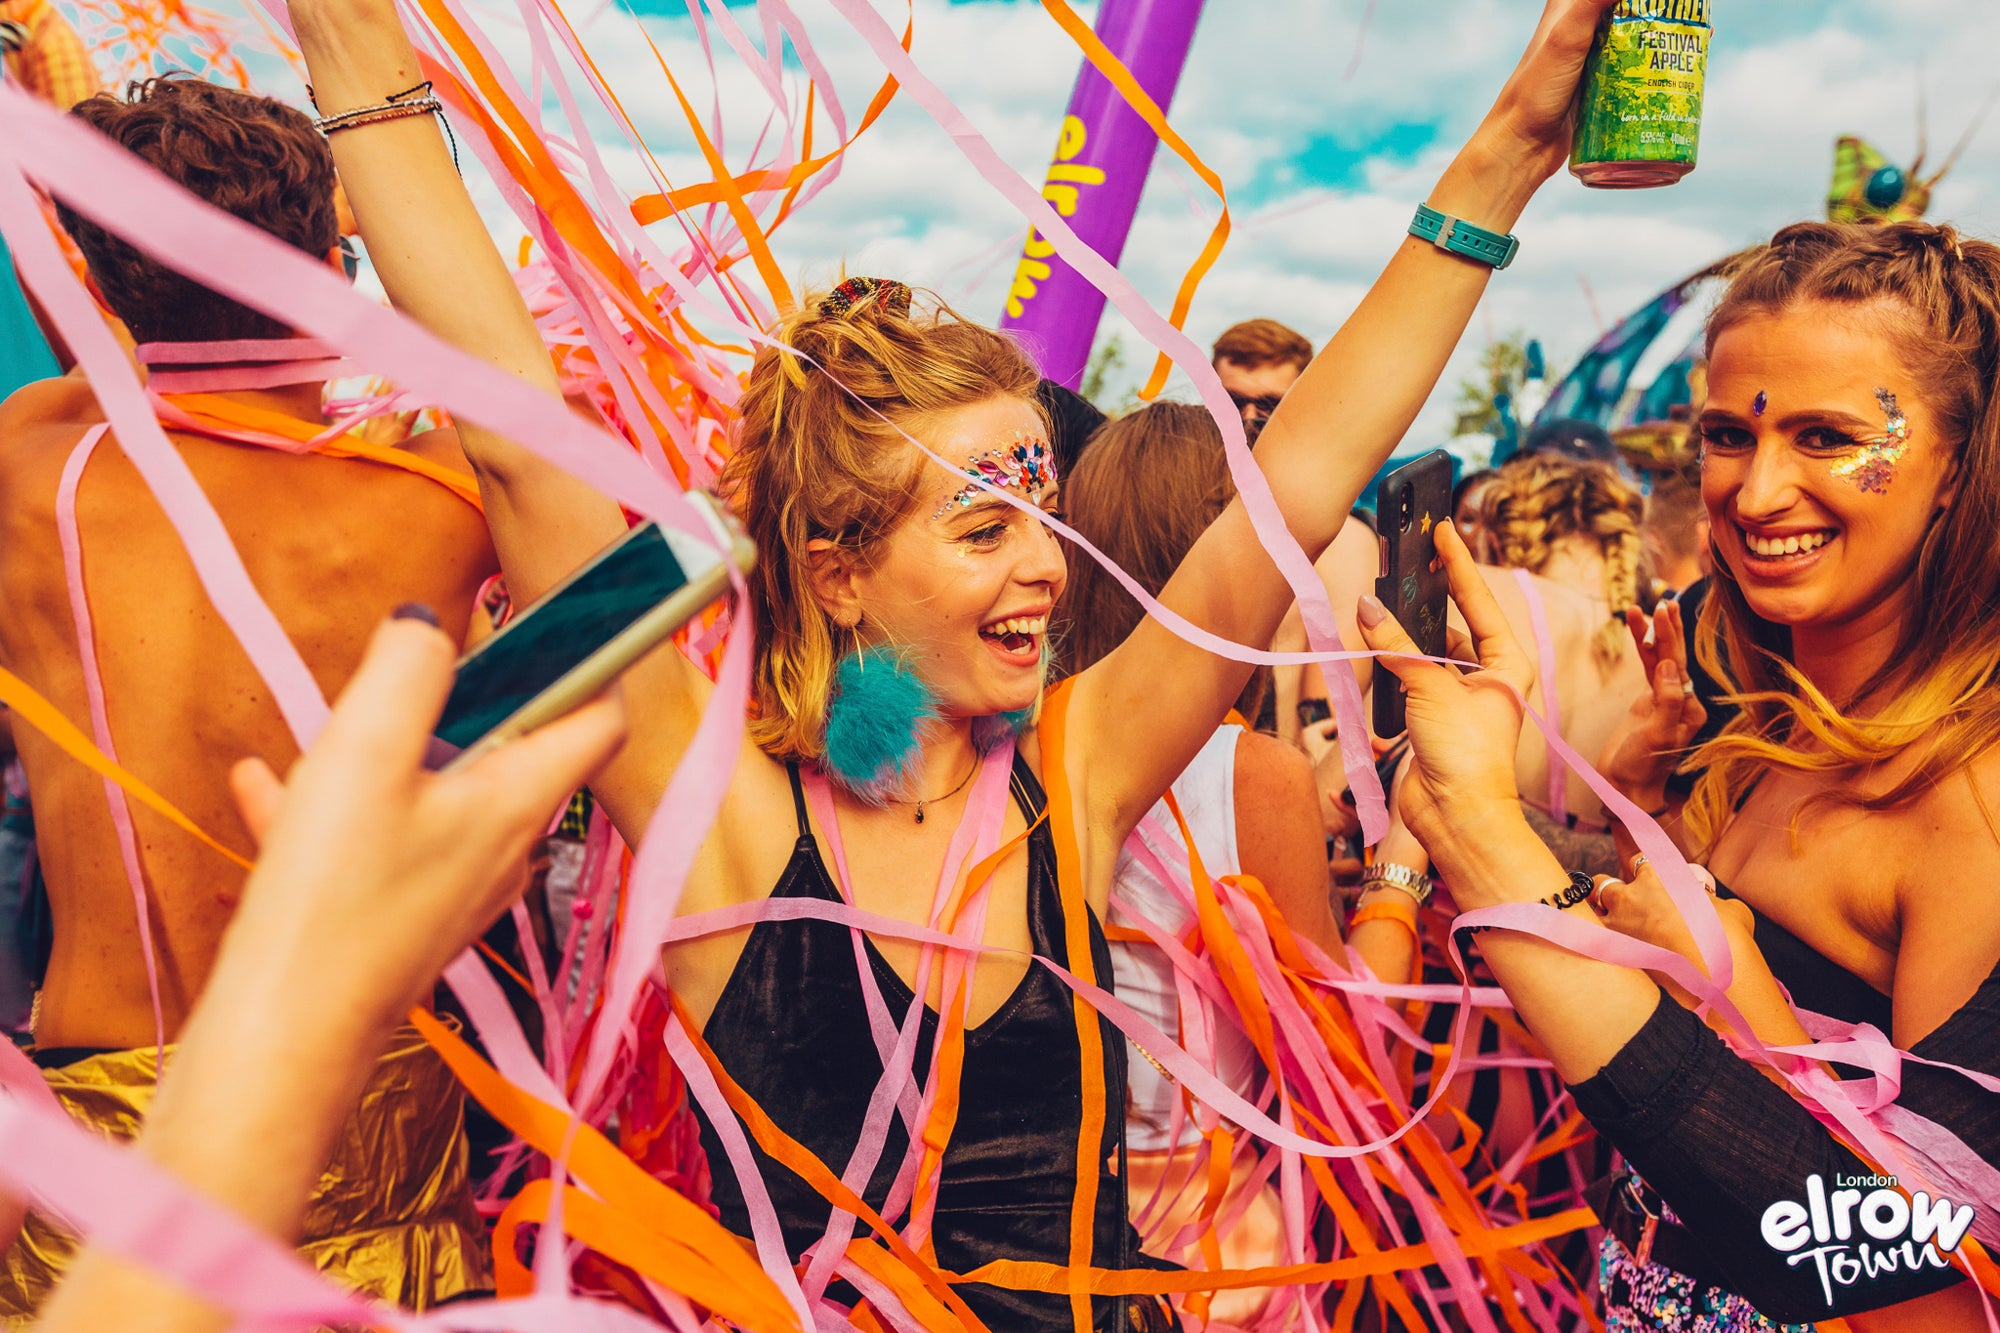 Elrow how wacky flamboyance created the most popular party in the credit aronklein fandeluxe Gallery